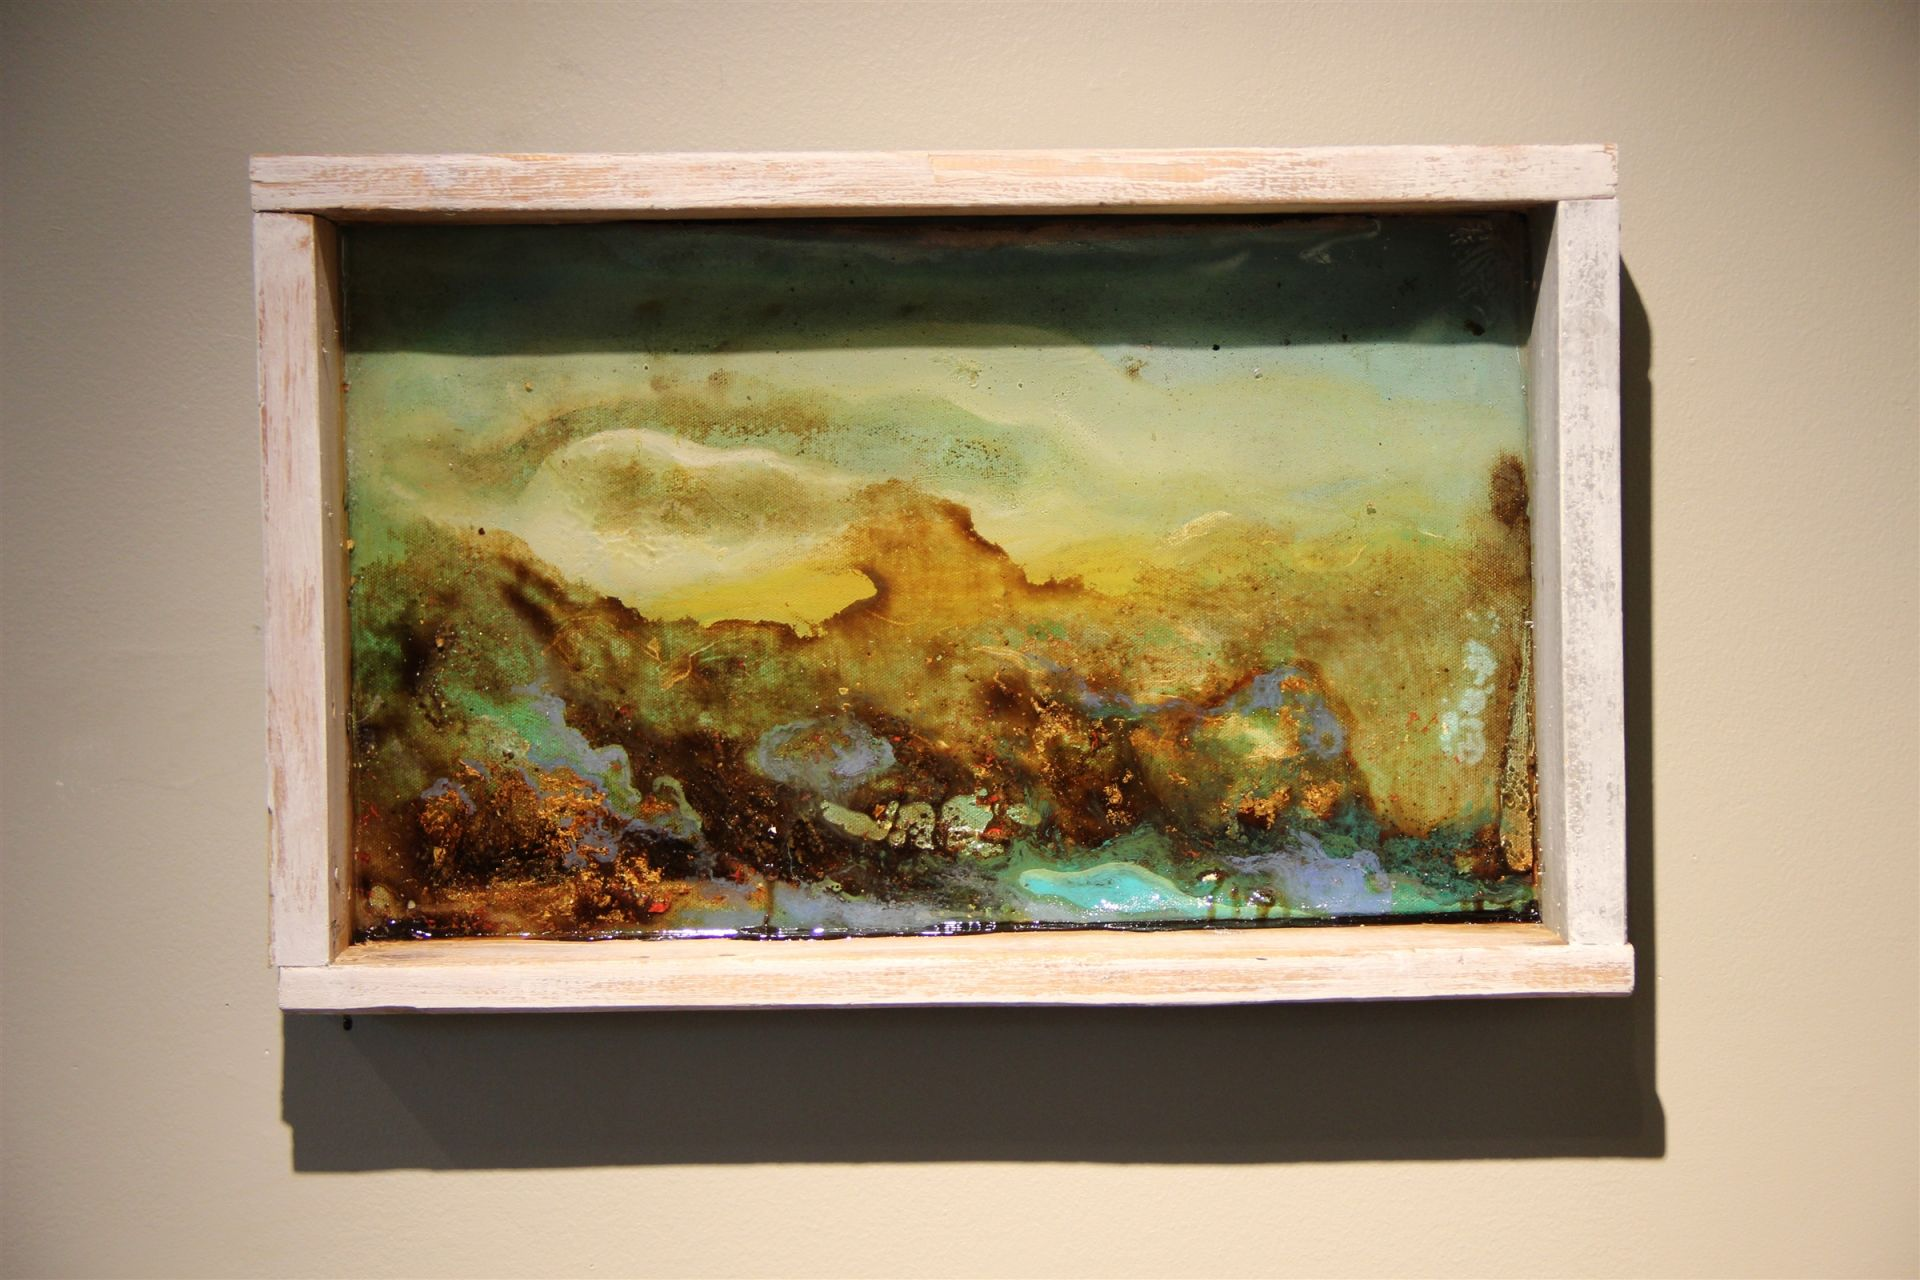 Will Close's '15 Capstone Project was recently displayed in the Installation Gallery. For his Capstone, he made landscapes with nontraditional materials, such as molasses, honey, karo syrup peanut butter, flour, baking soda, and more.